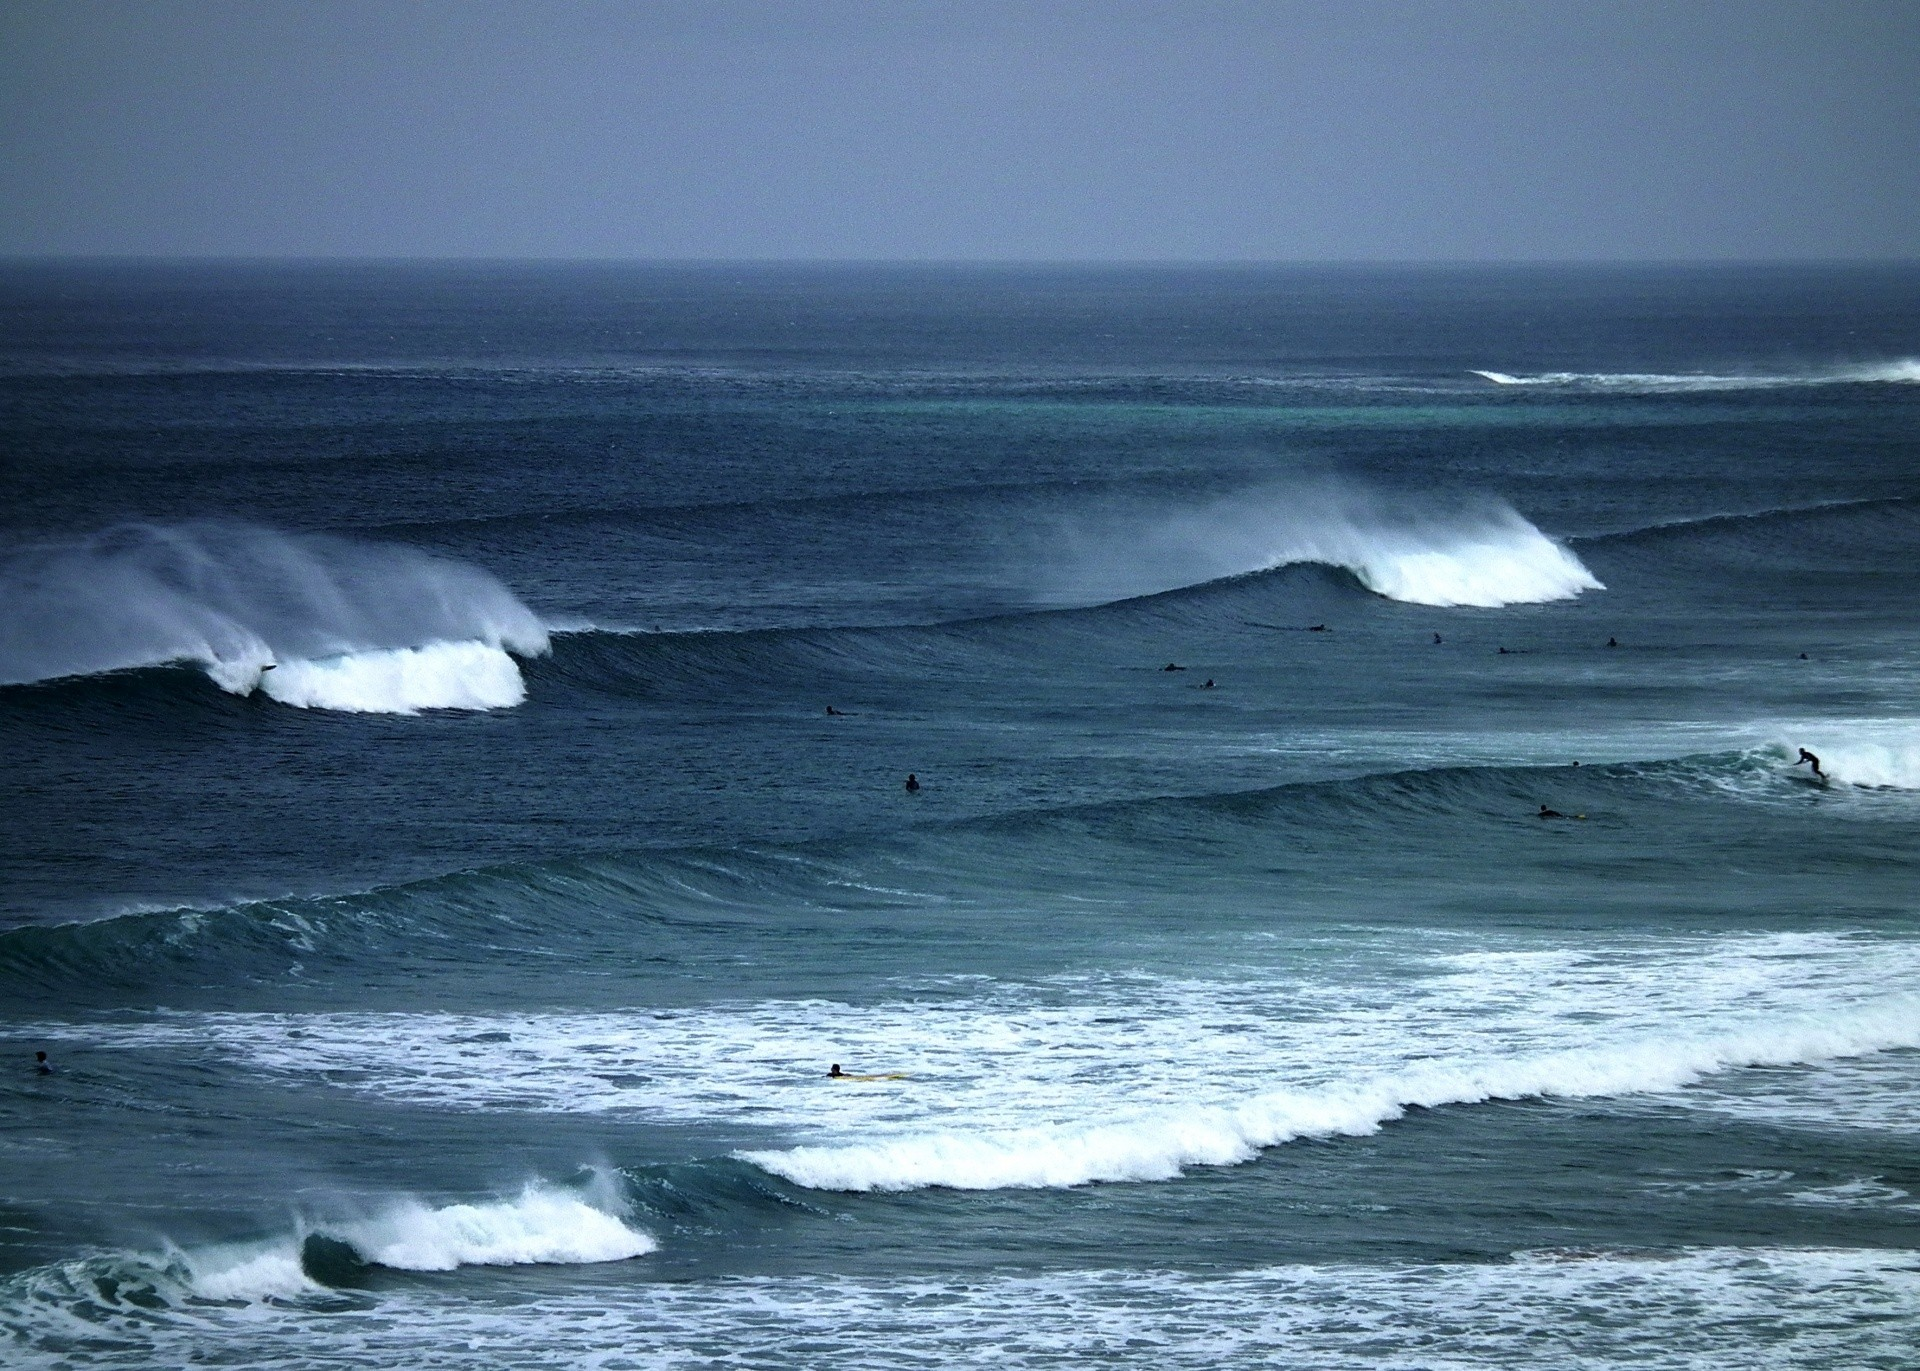 Hawthorn Wilson's photo of Newquay - Fistral North